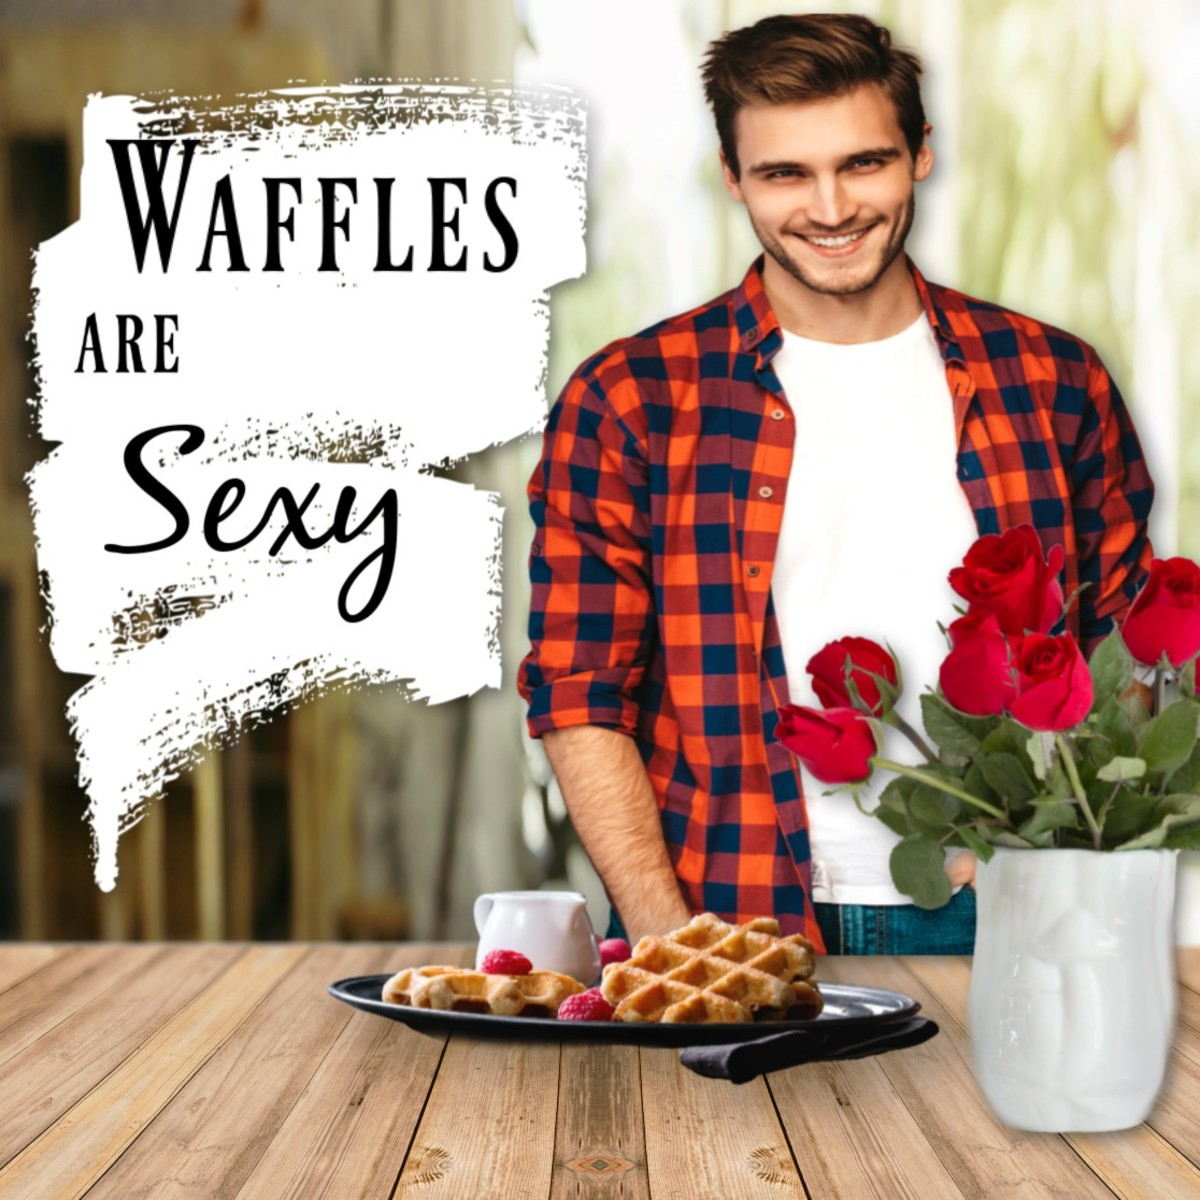 Real Men Make Waffles: A Romantic Breakfast Guide for the Man in Your Life